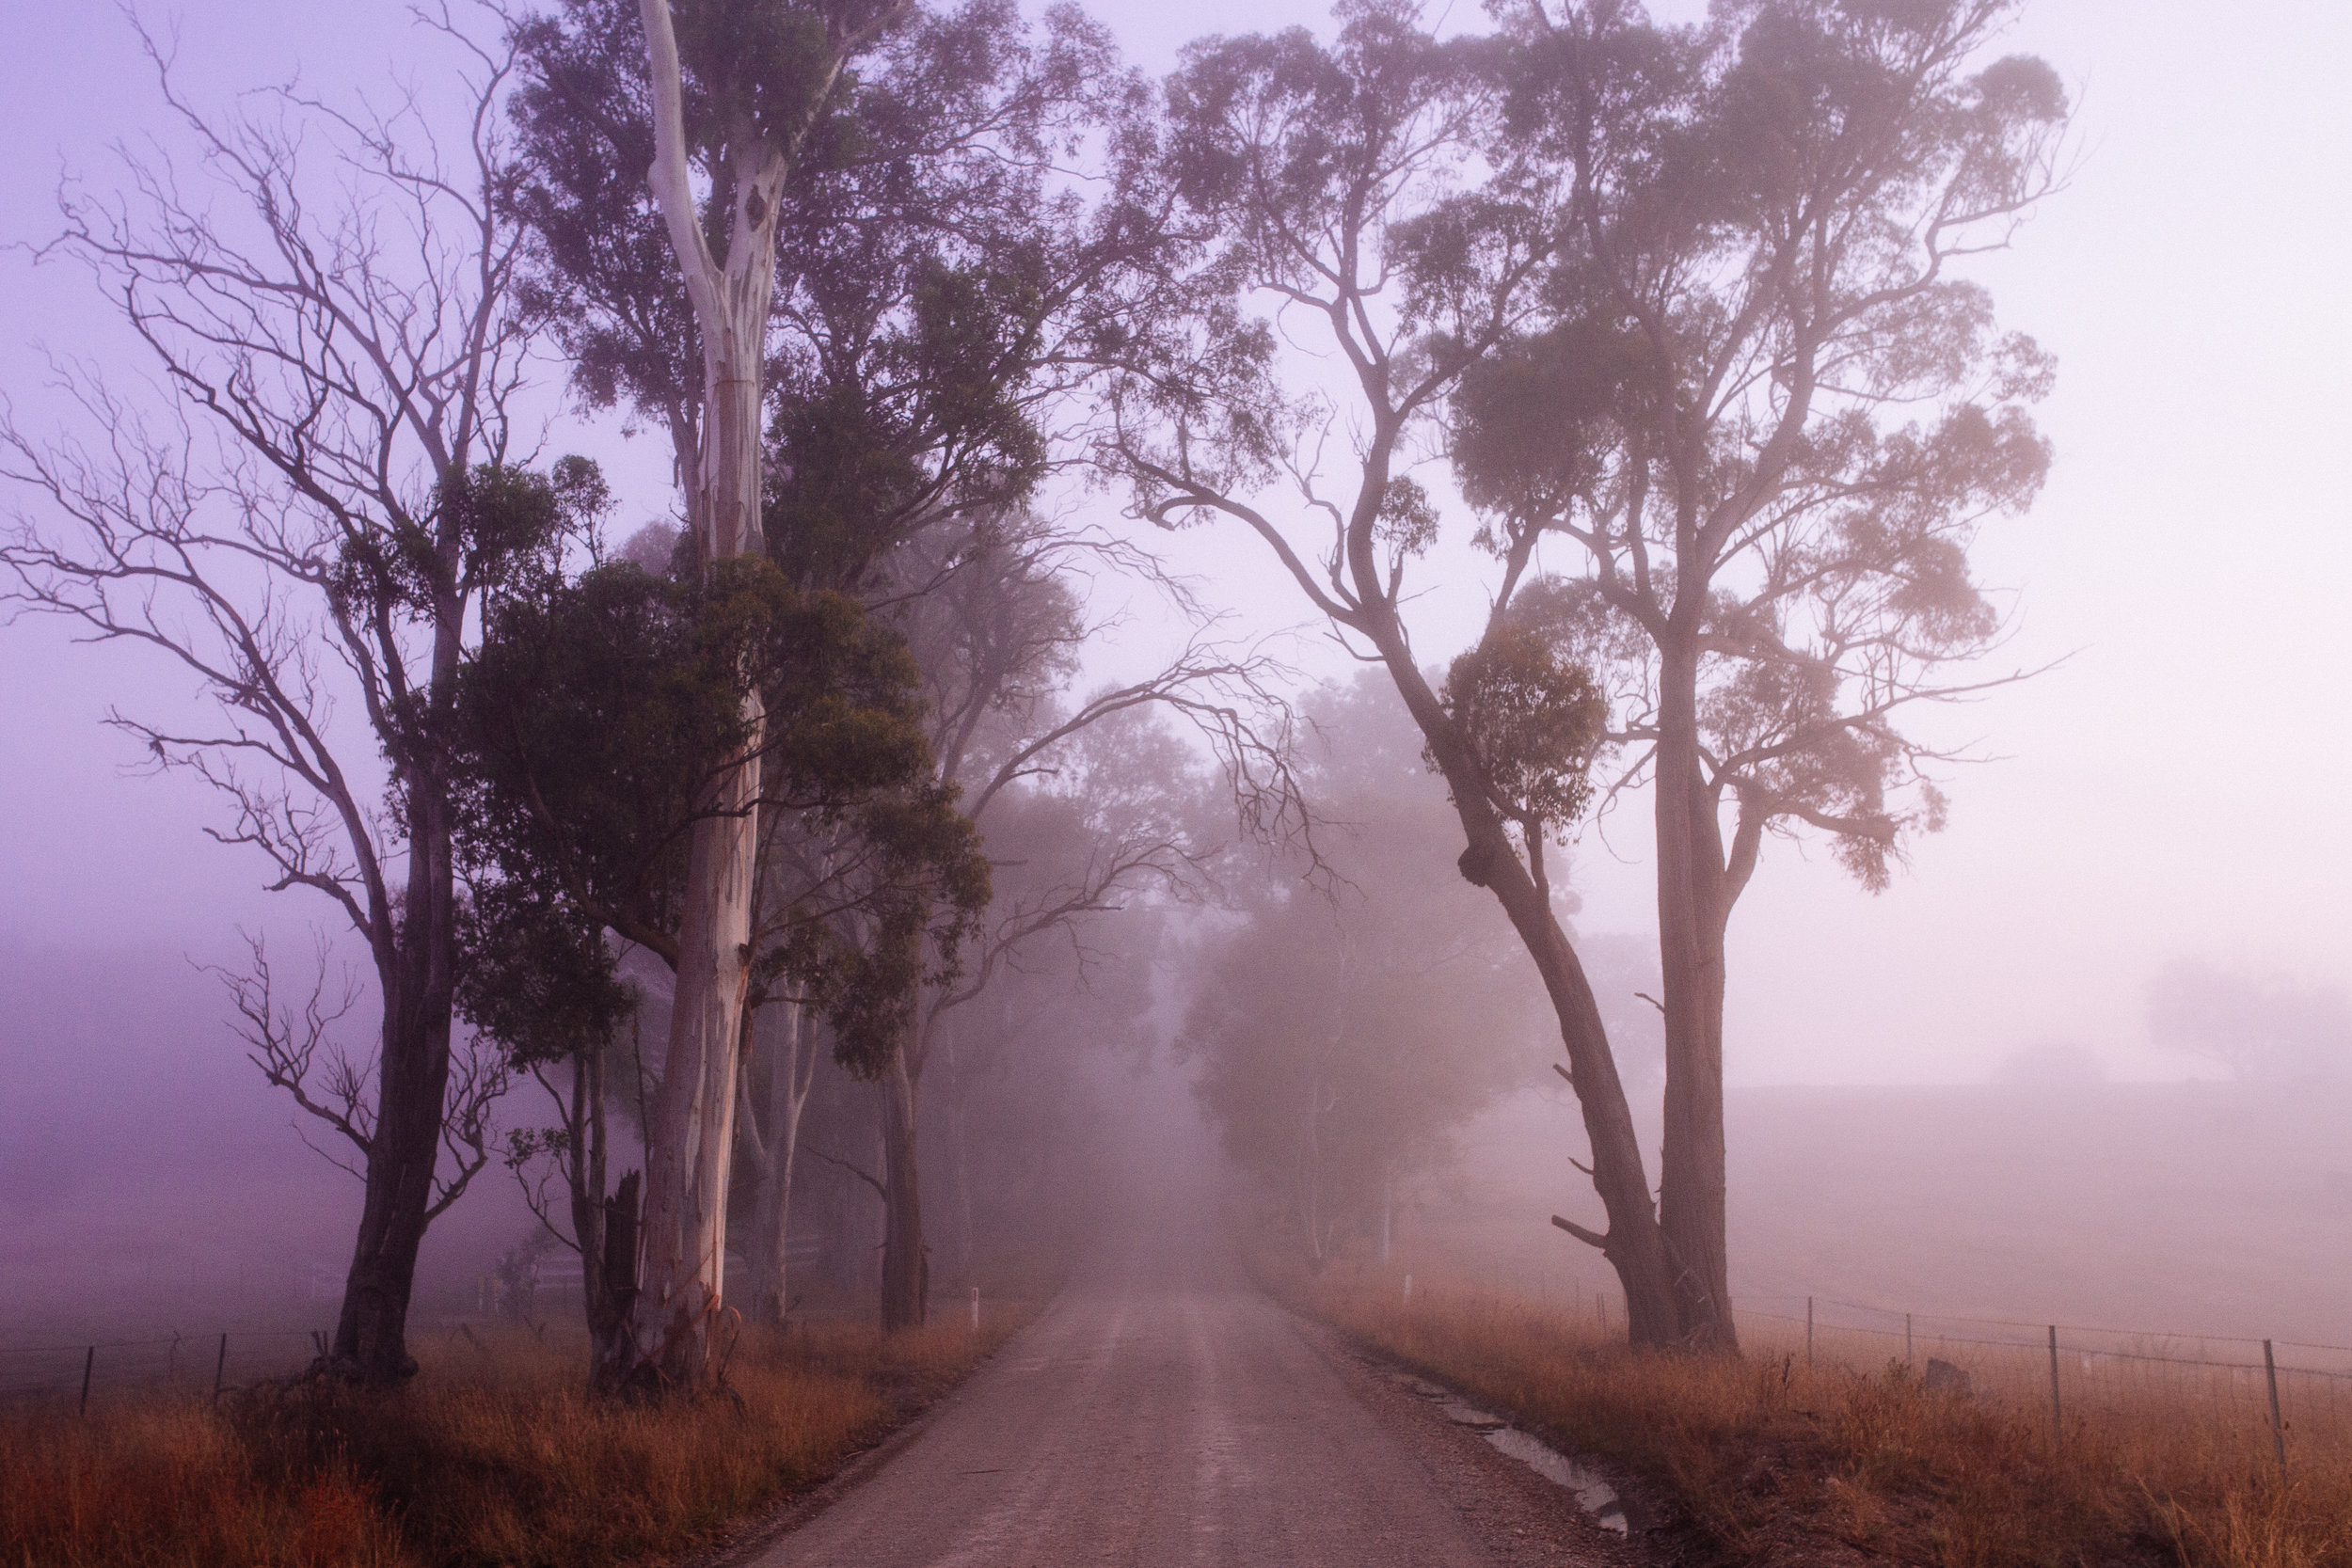 A misty morning in rural NSW, perfect for atmospheric wedding photography!